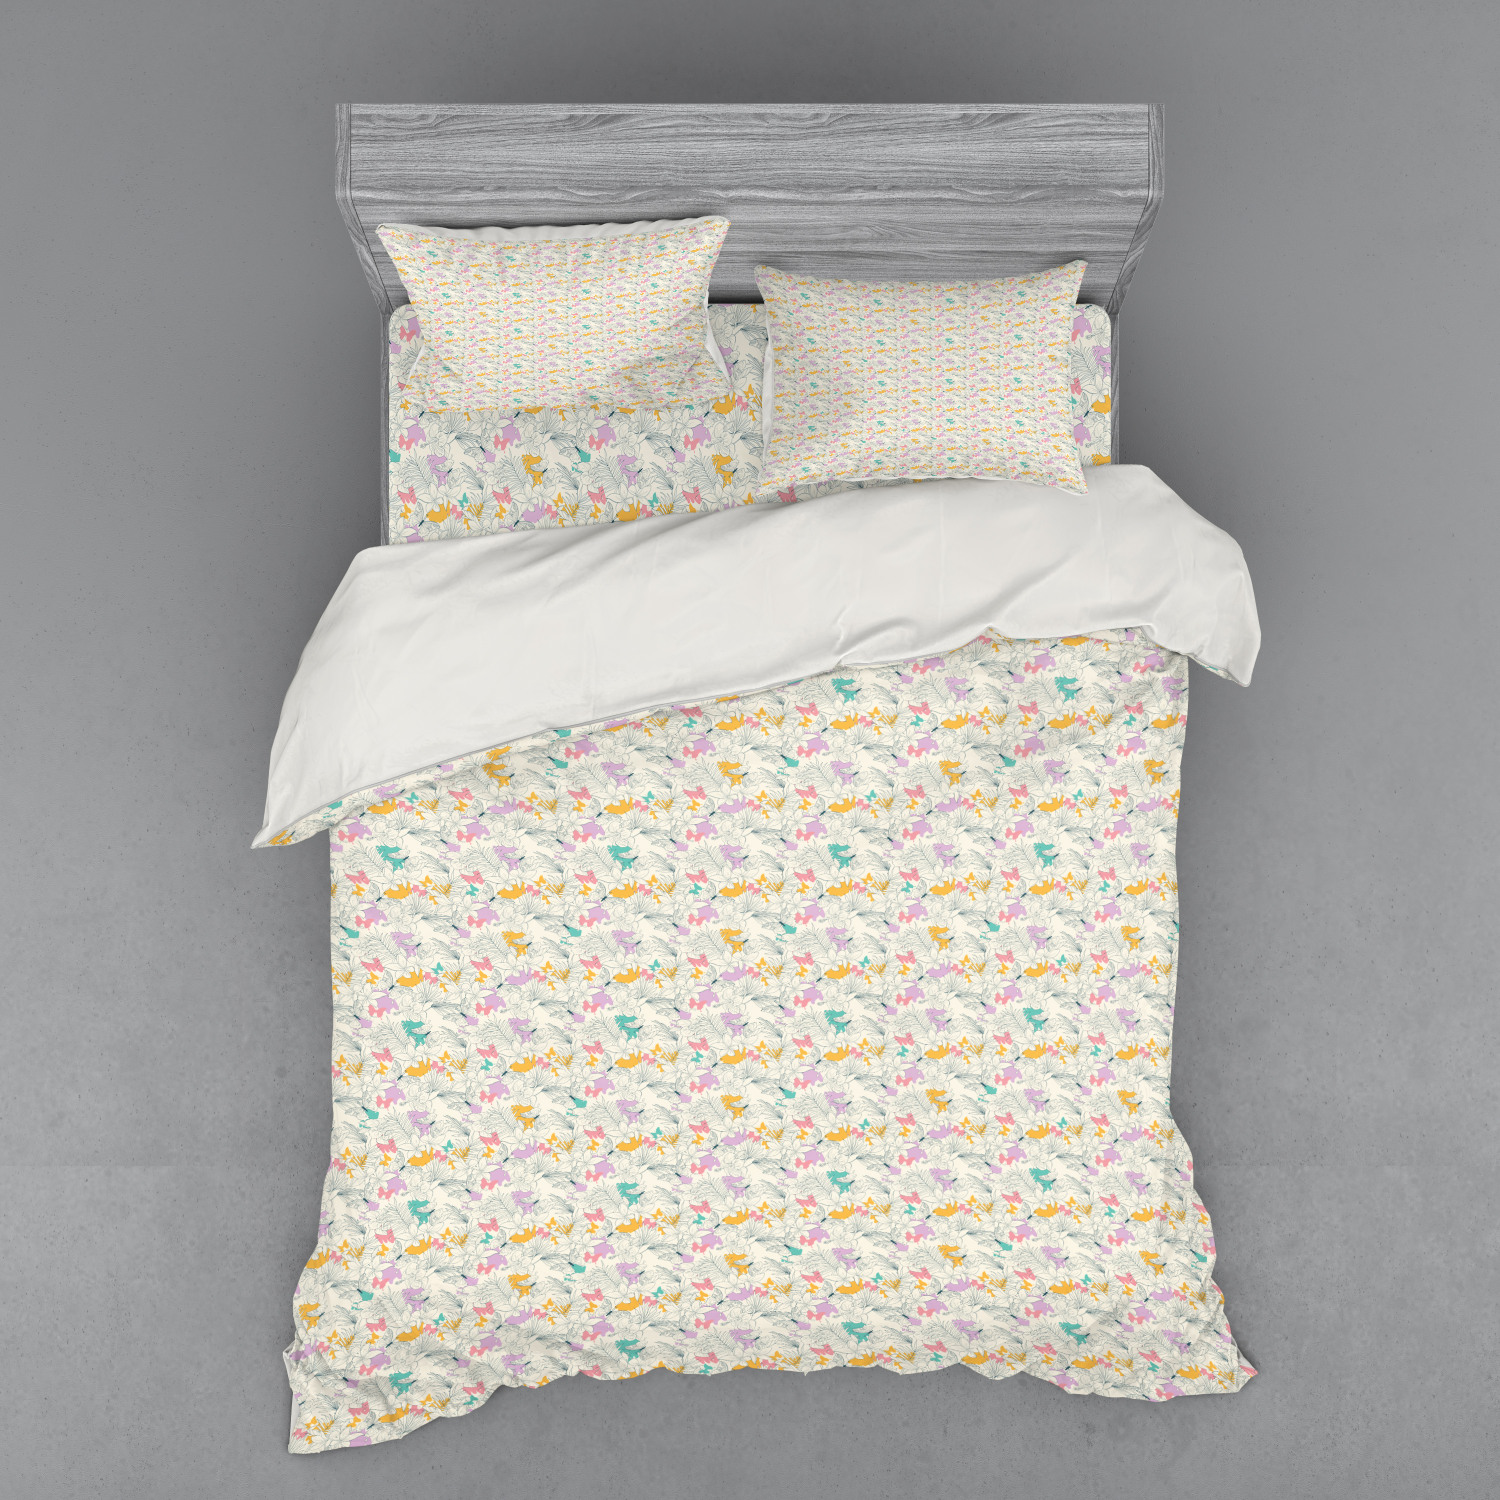 thumbnail 6 - Ambesonne Summer Bedding Set Duvet Cover Sham Fitted Sheet in 3 Sizes